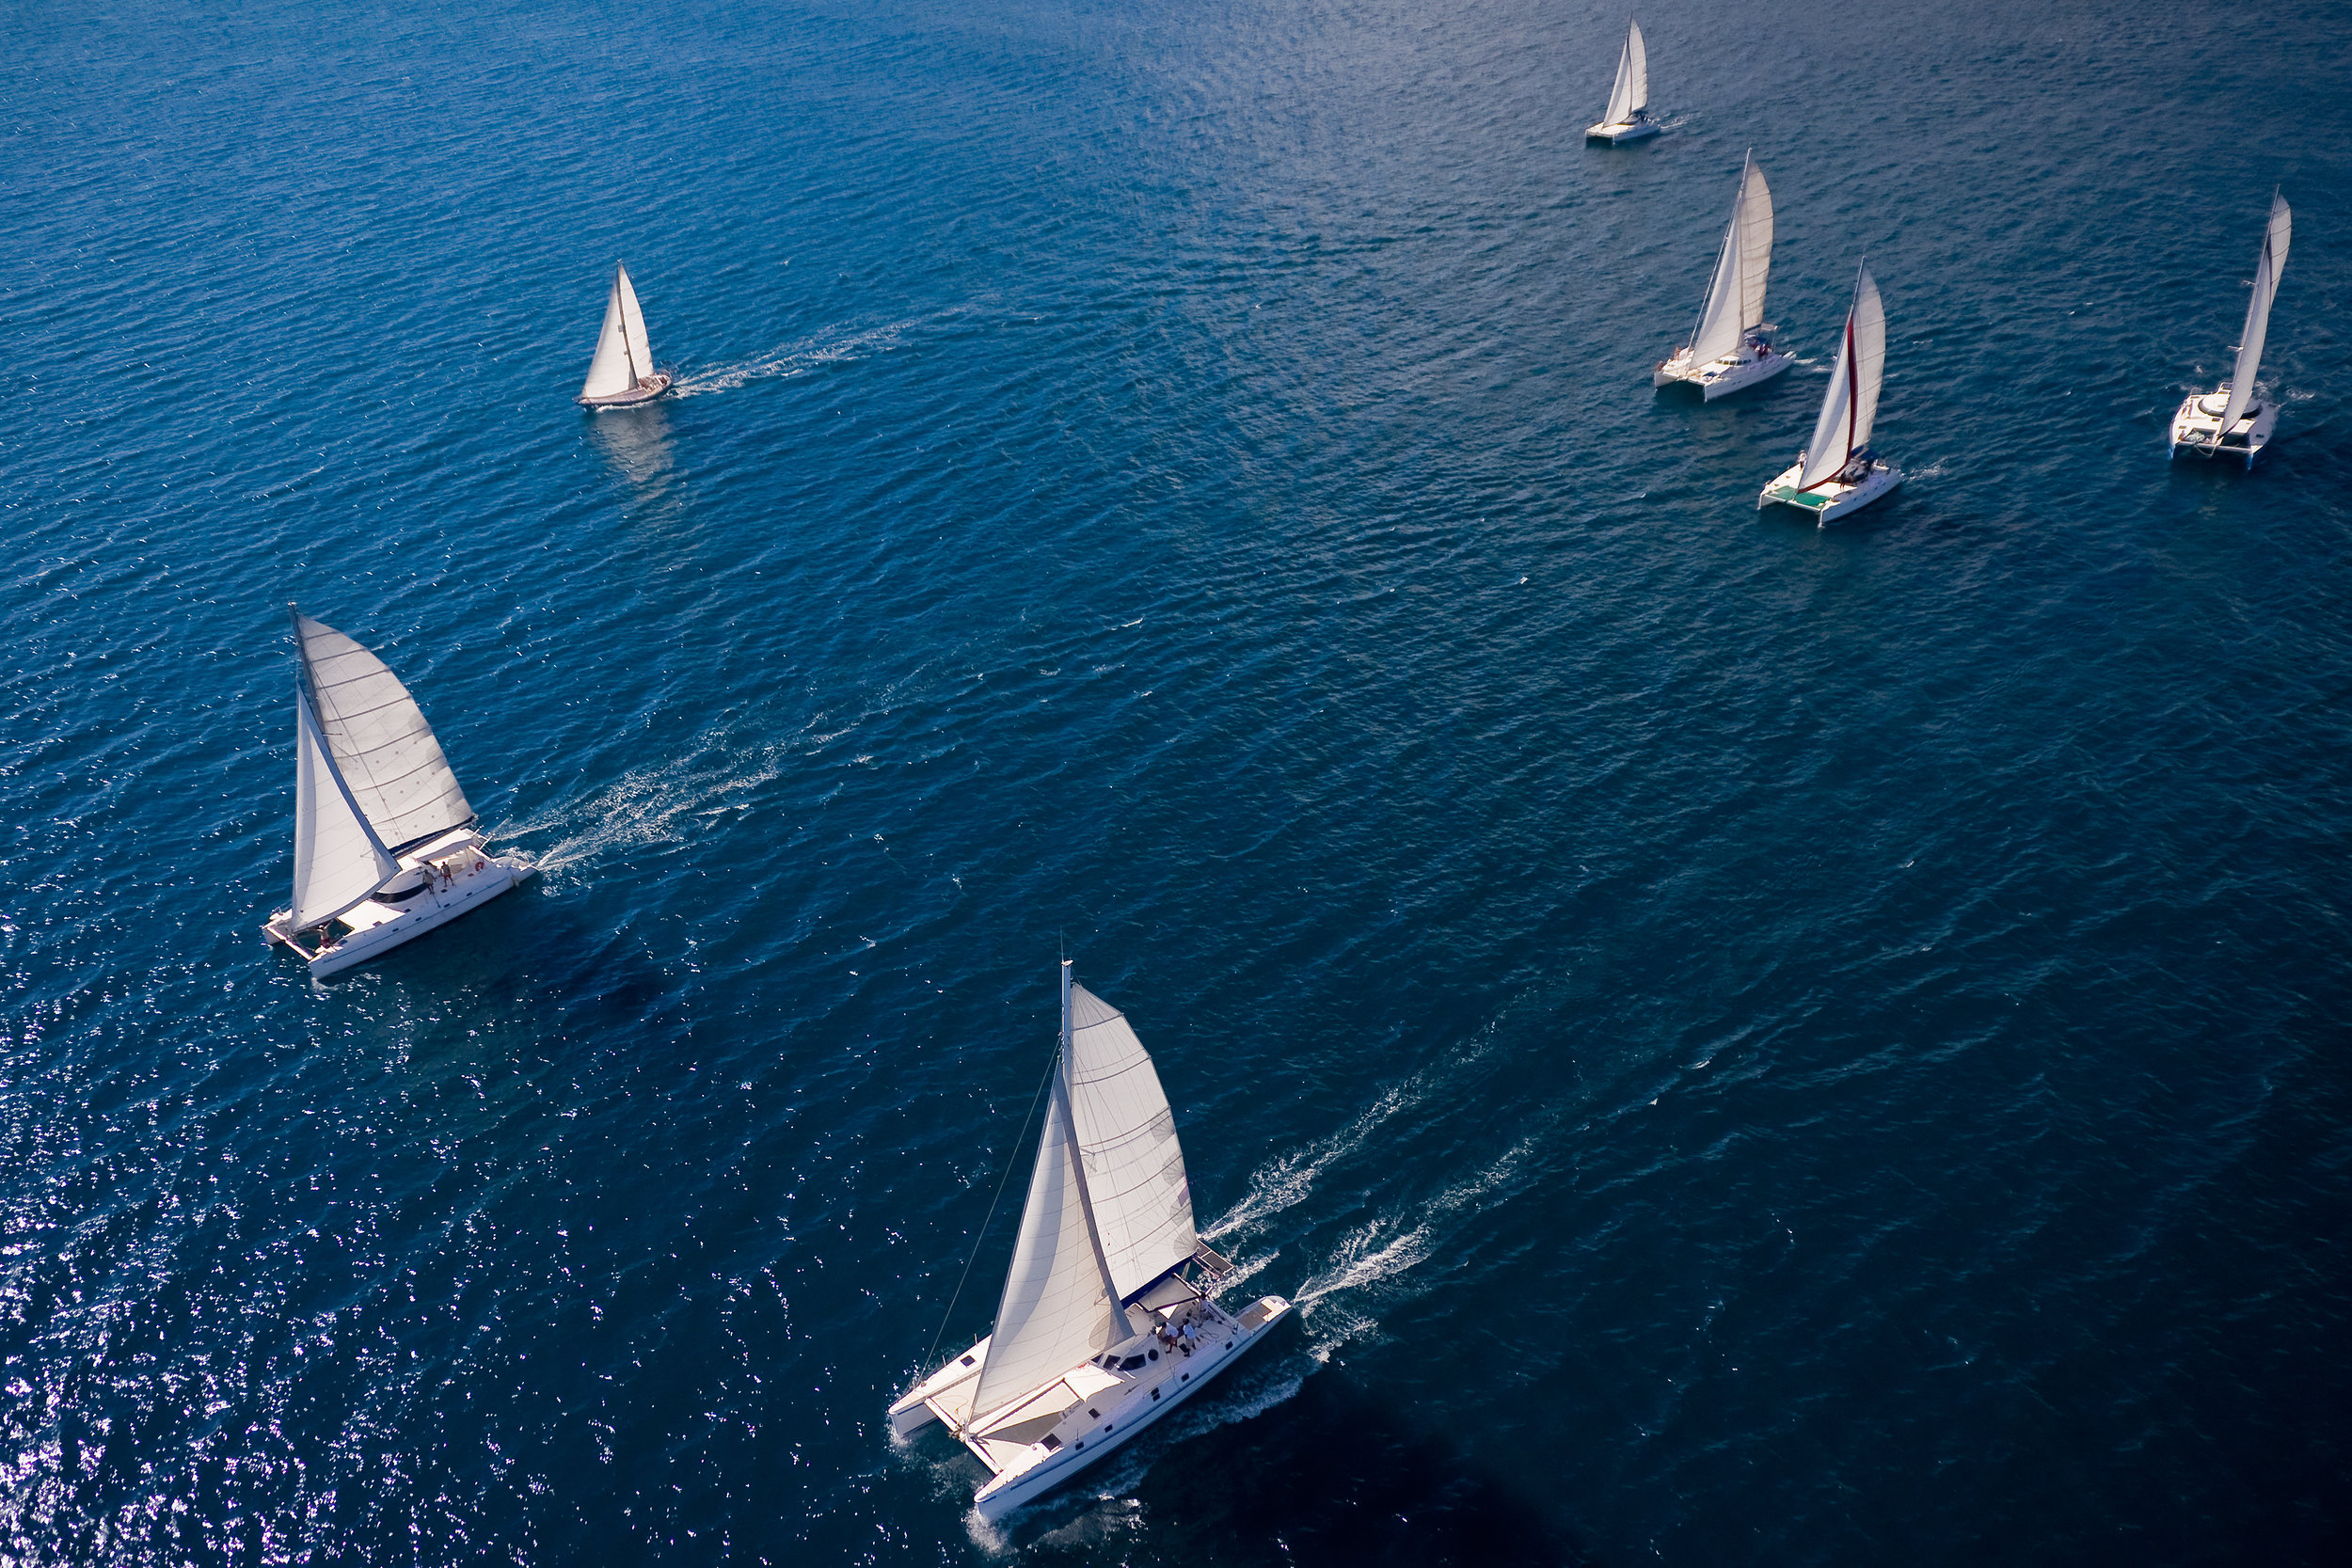 Aerial view of sailboats sailing in ocean